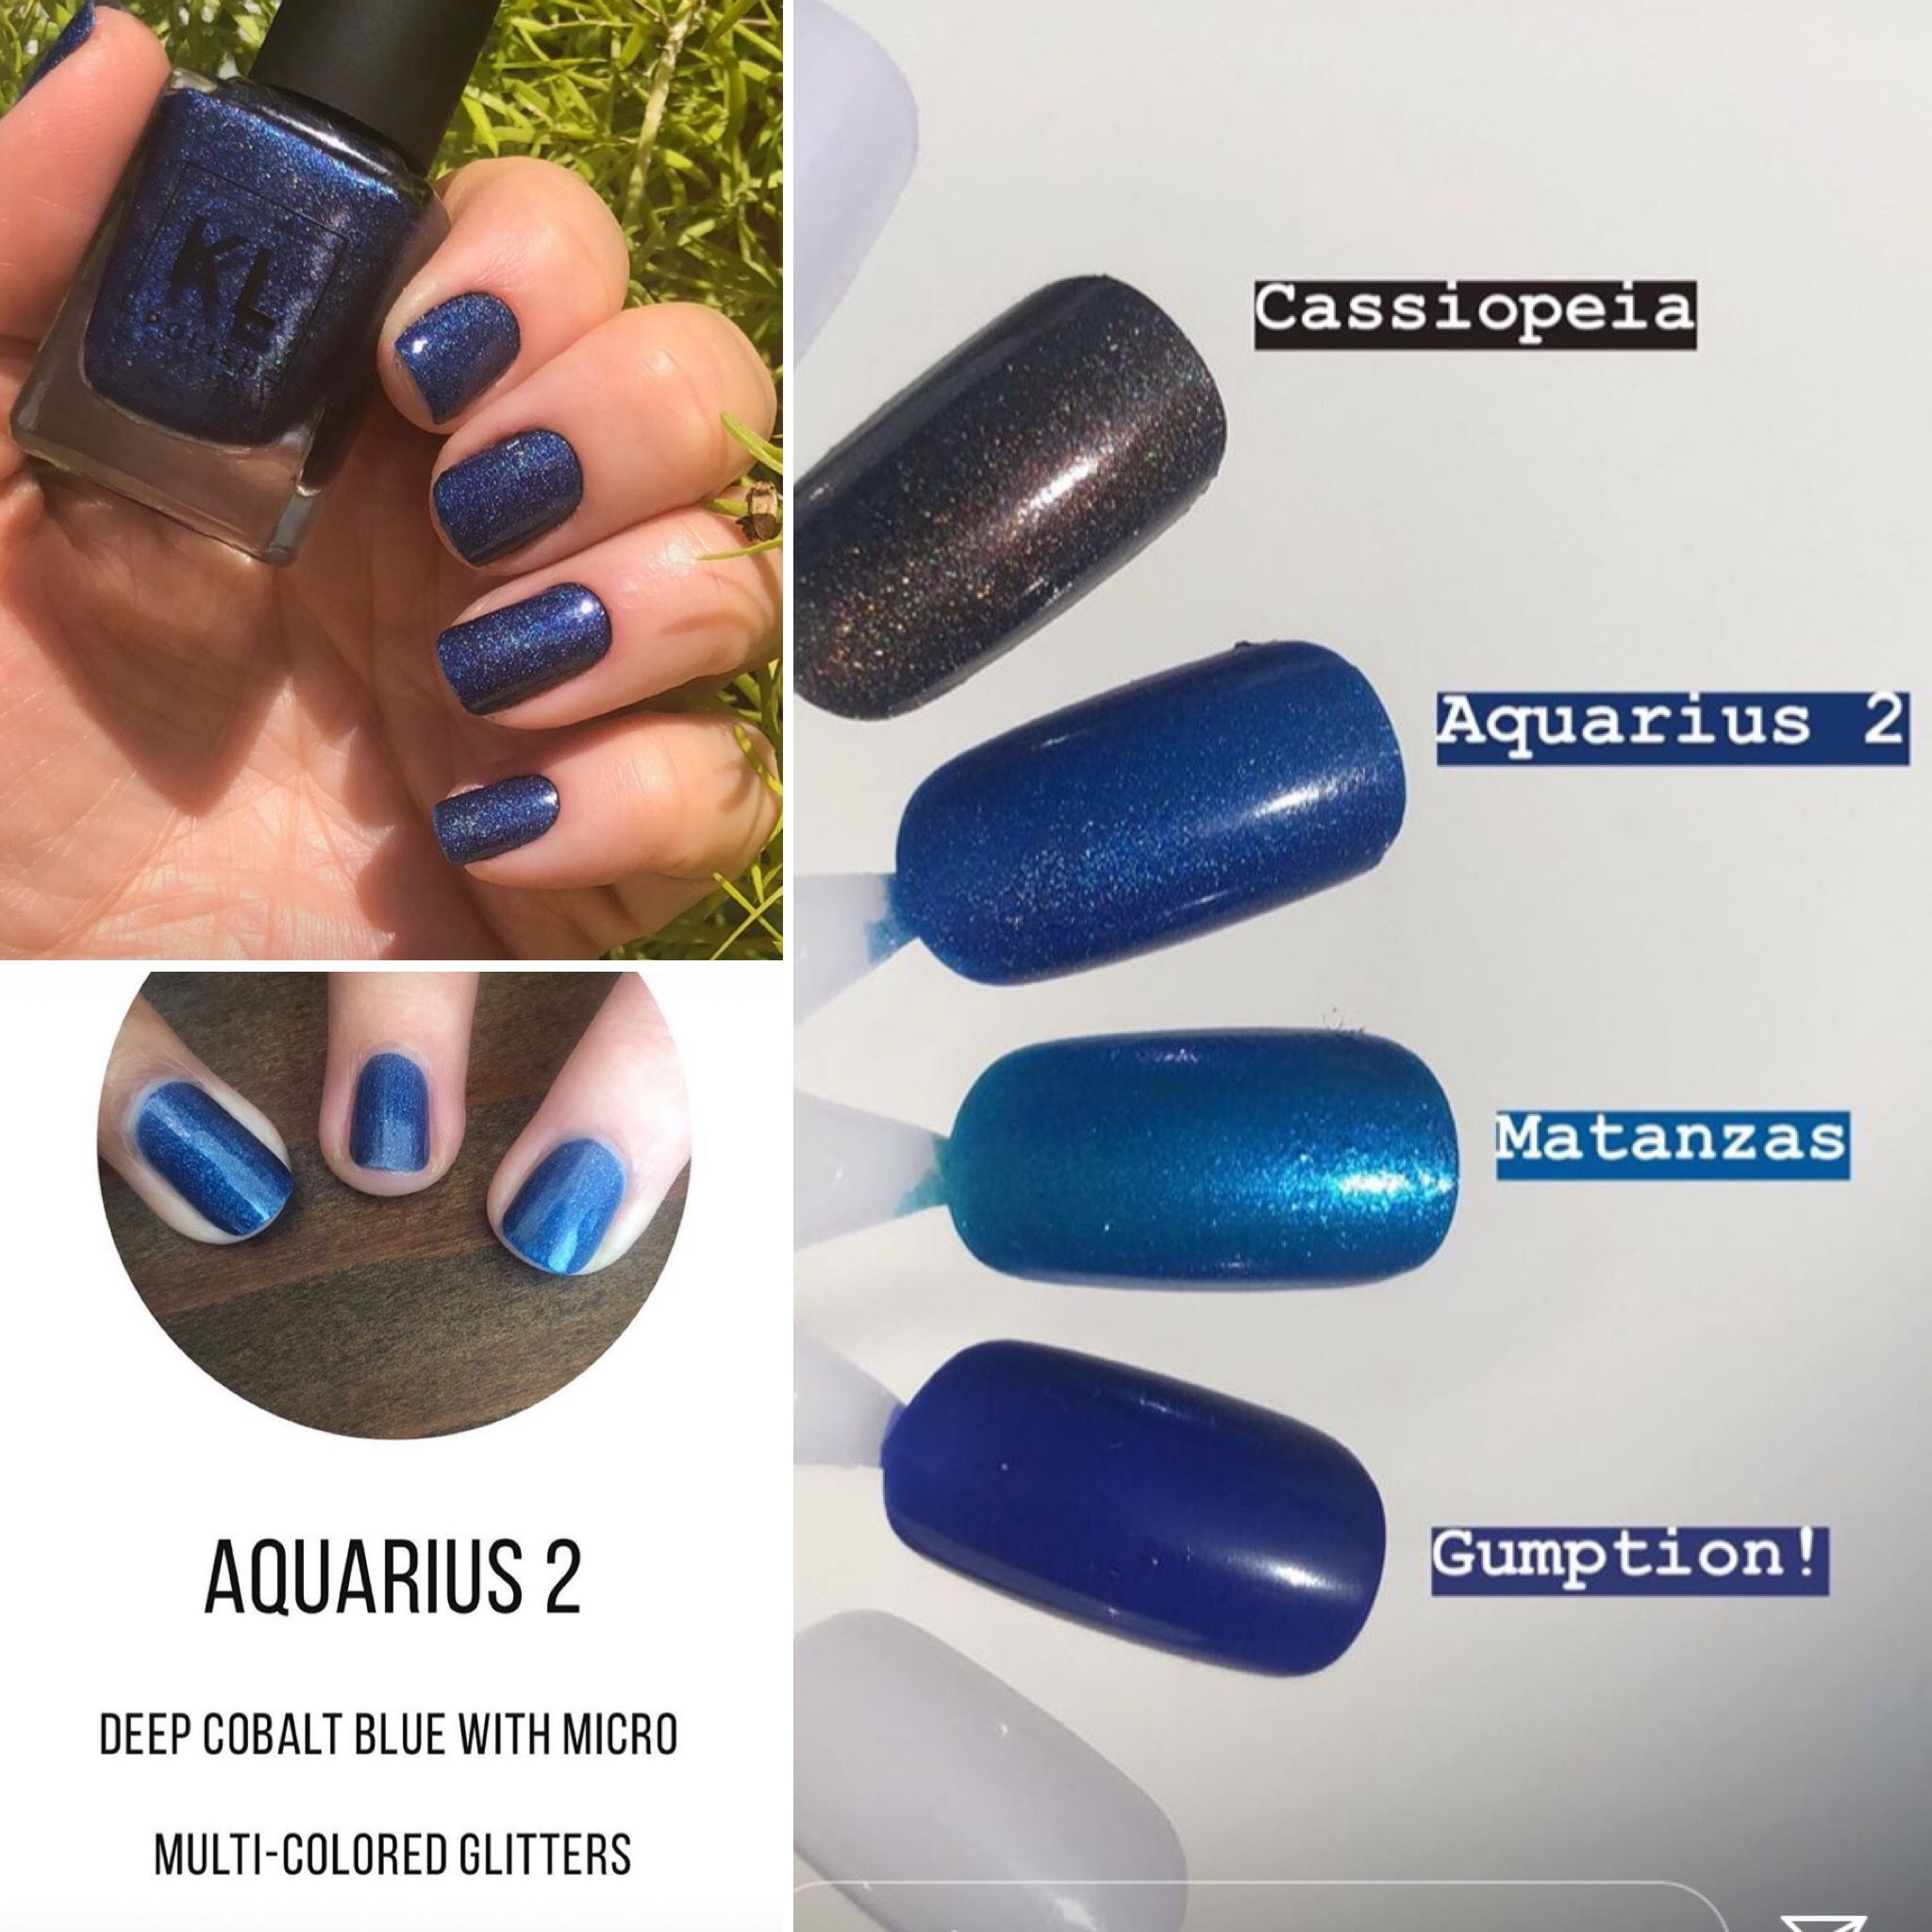 Kl Polish Aquarius 2 Toe Nail Designs Beauty Nails Toe Nails